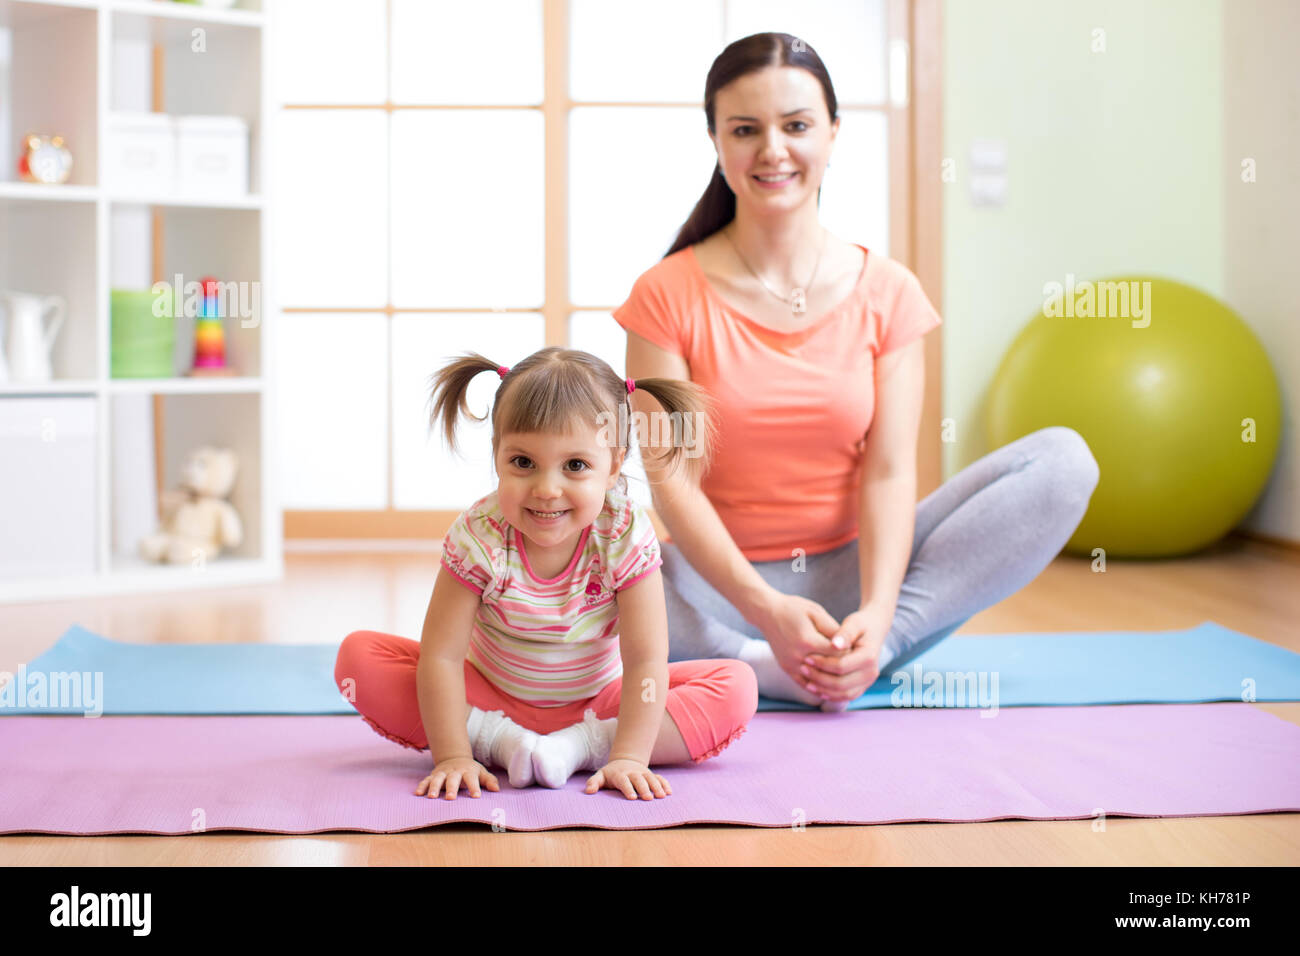 Mother and child daughter practicing yoga together in living room at home. Sport and family concept. - Stock Image